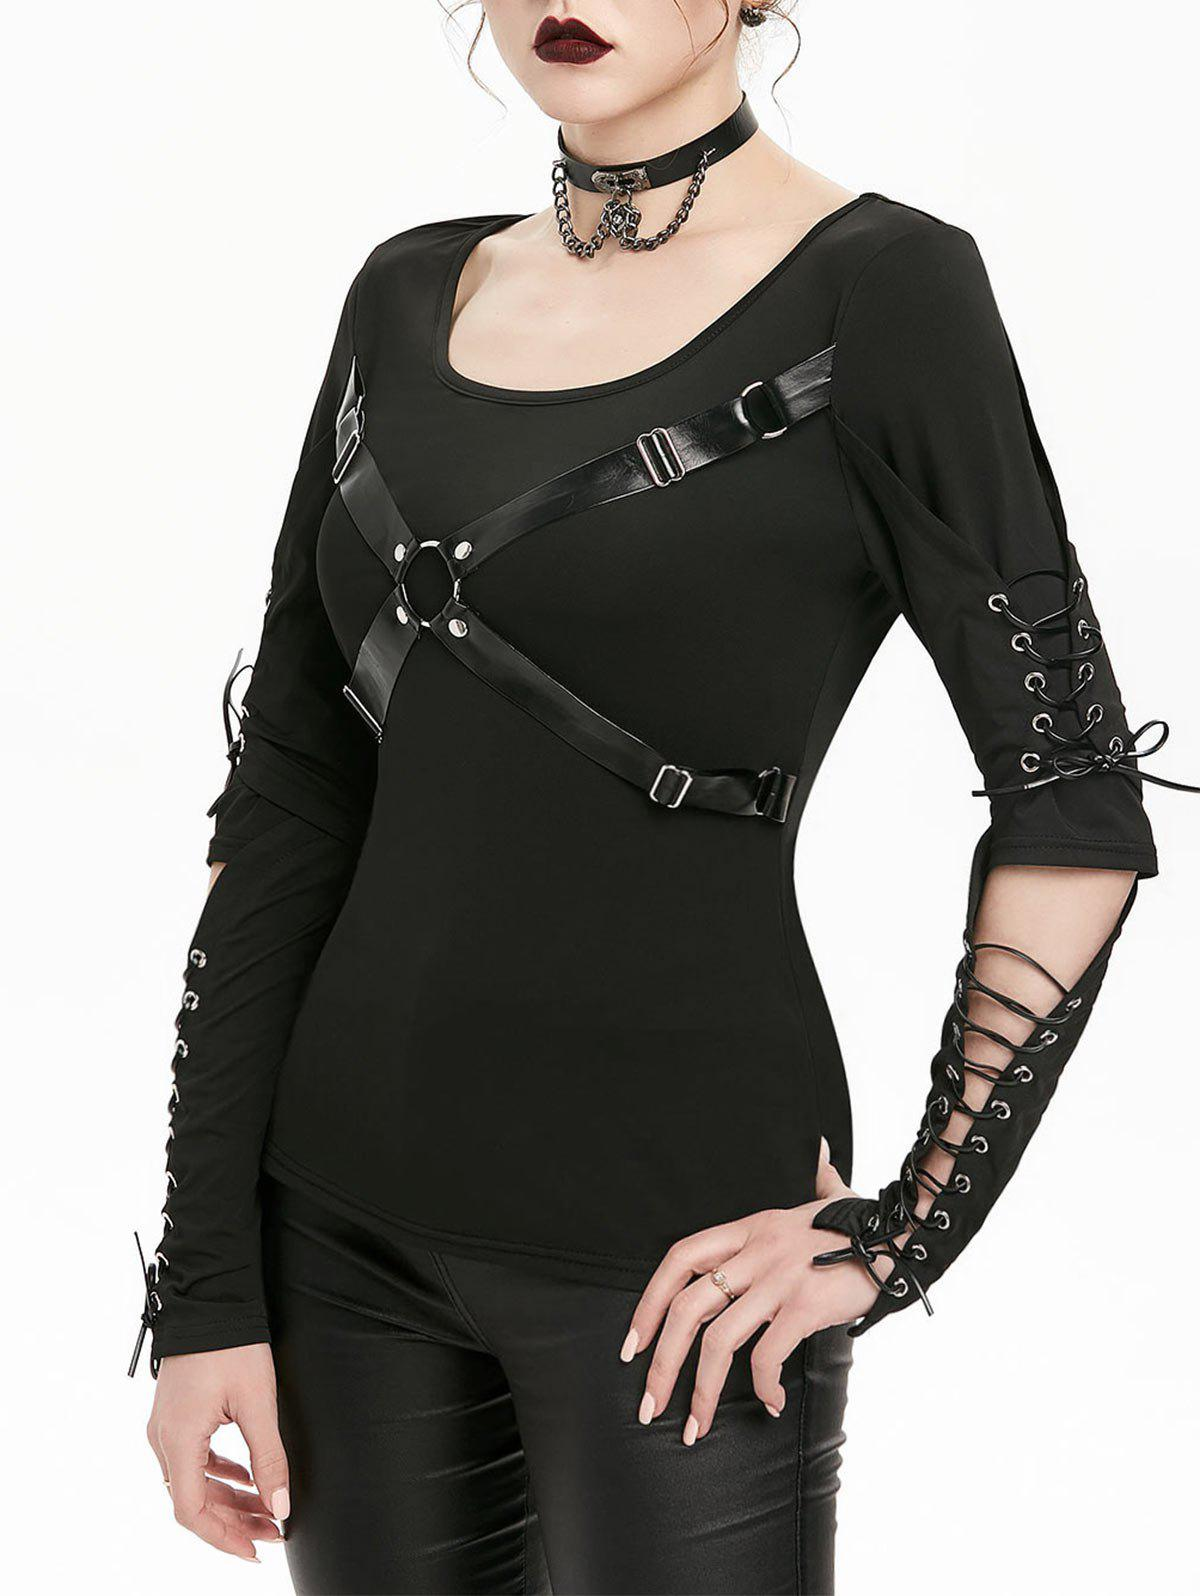 Unique Harness Insert Lace-up Cut Out Elbow Gothic T-shirt